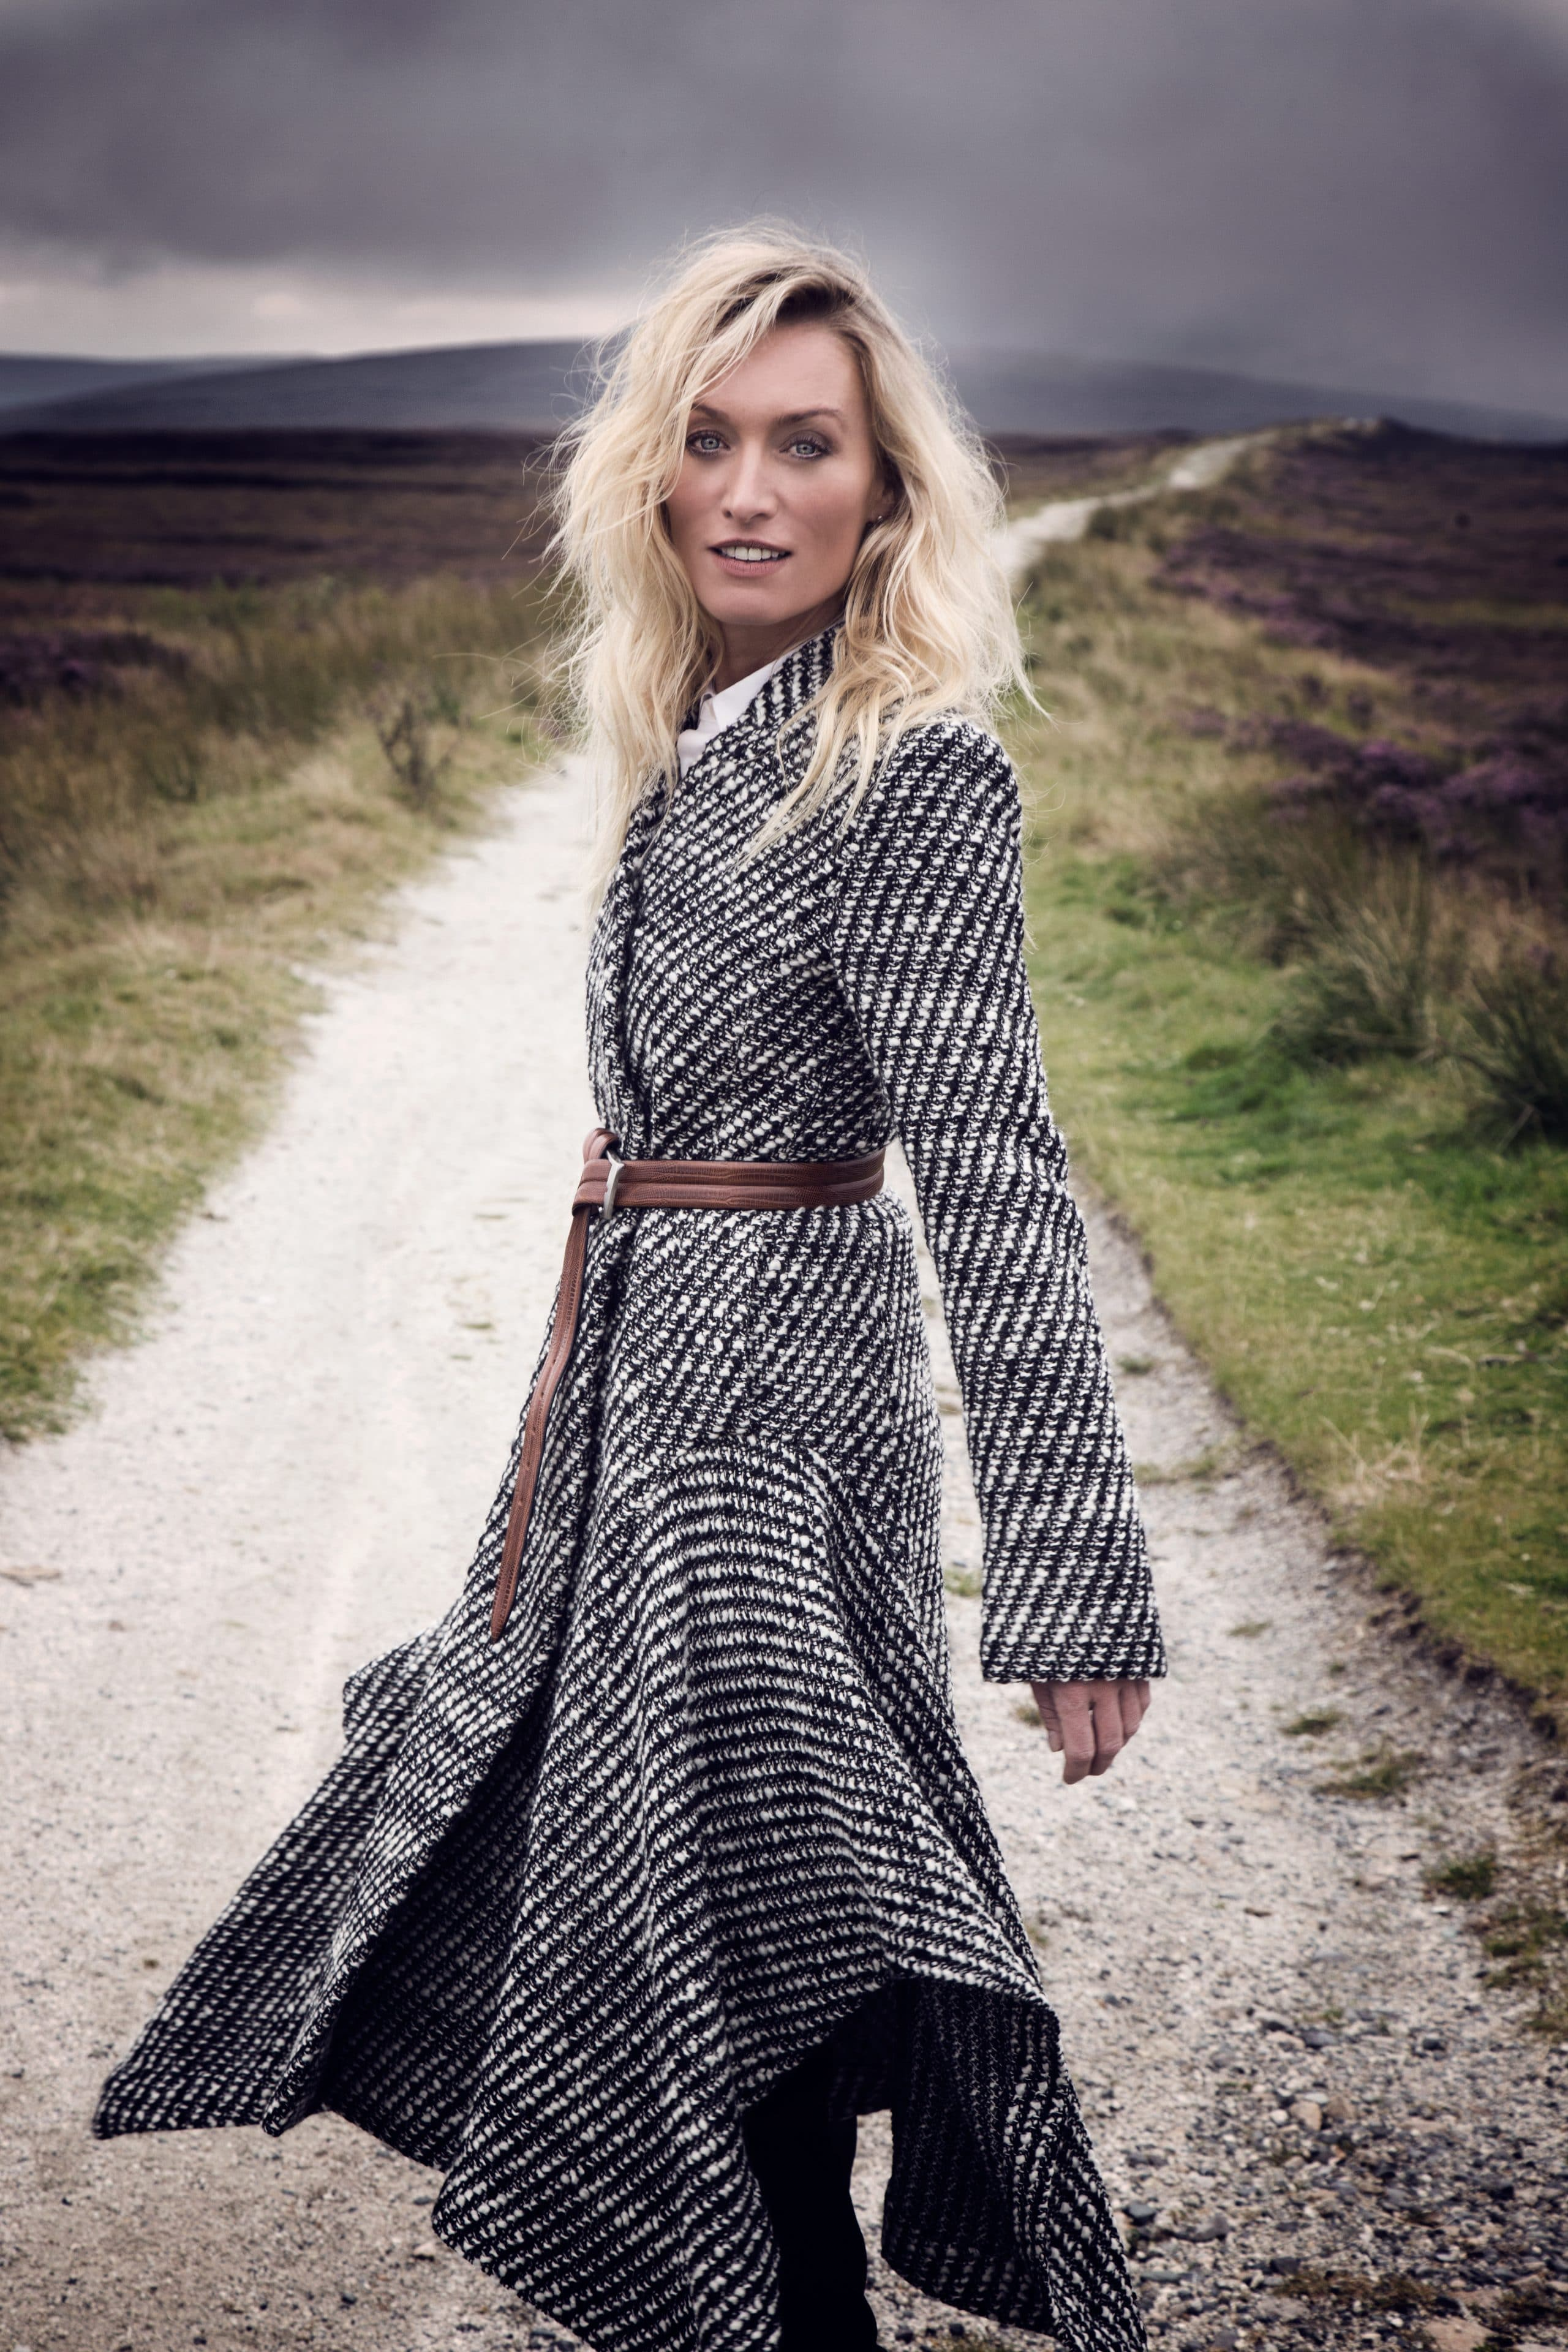 Barry McCall Photographer_Photography_Victoria Smurfit